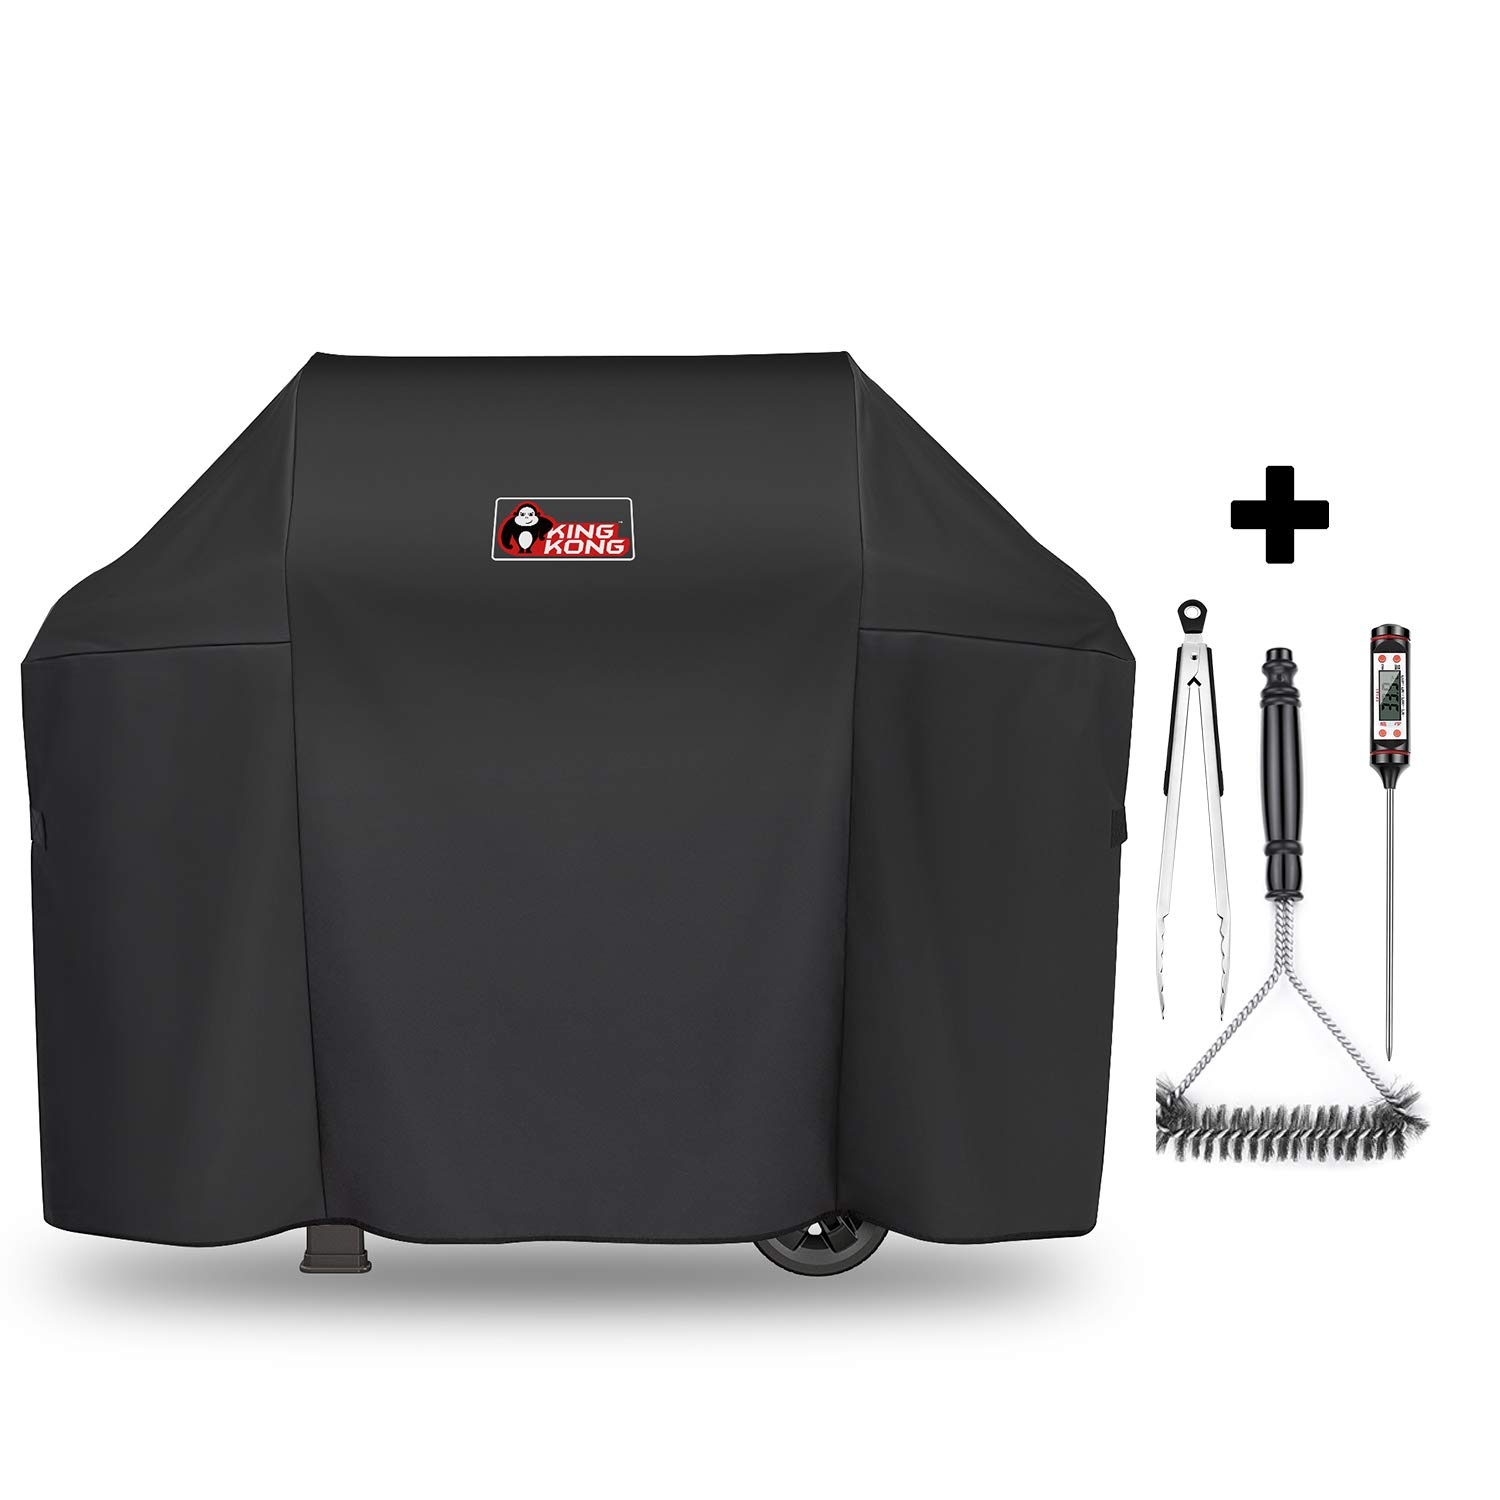 Kingkong 7139 Grill Cover for Weber Spirit II 300 and Spirit 200 Series (with Side Mounted Controls) Gas Grill Including Brush, Tongs and Thermometer